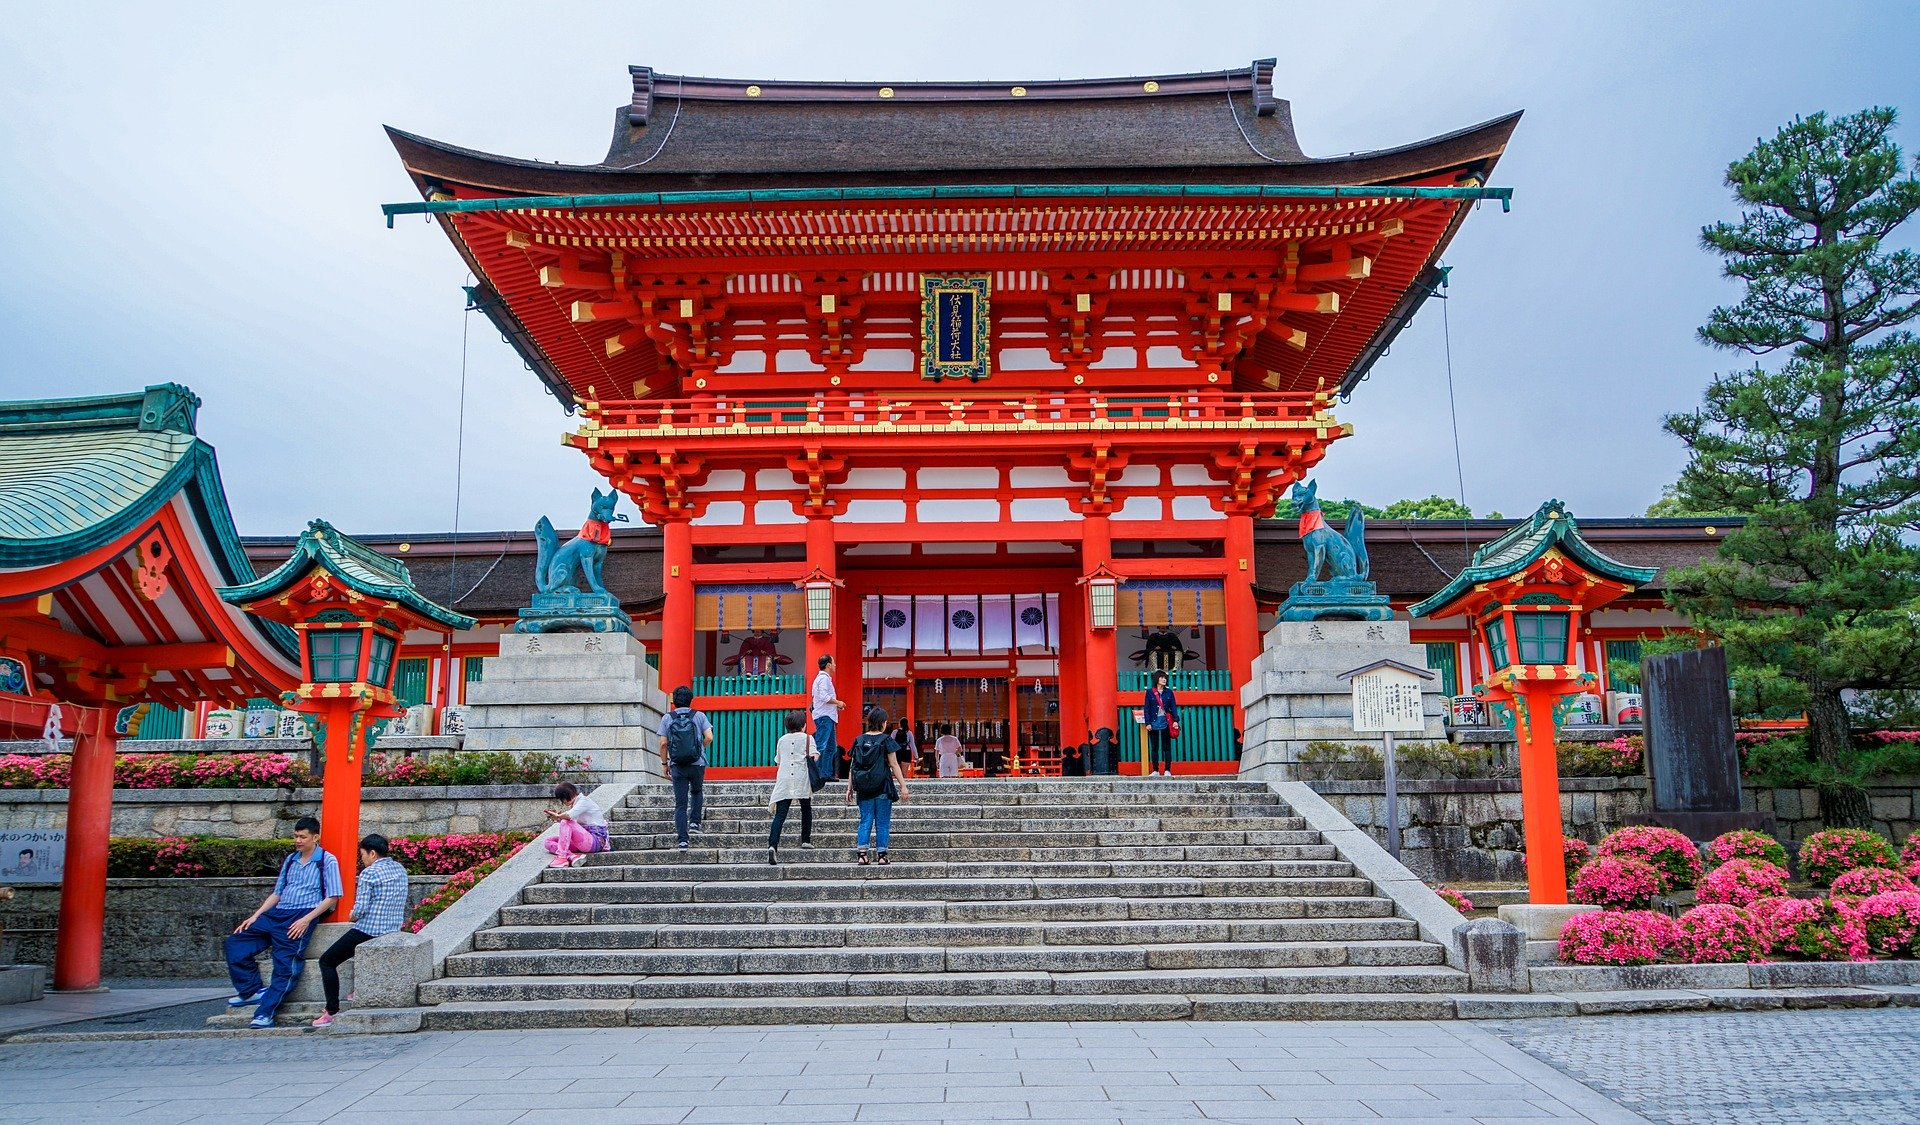 5 Reasons You Should Hire a Tours or Event Management Company for Your Next MICE Japan Event